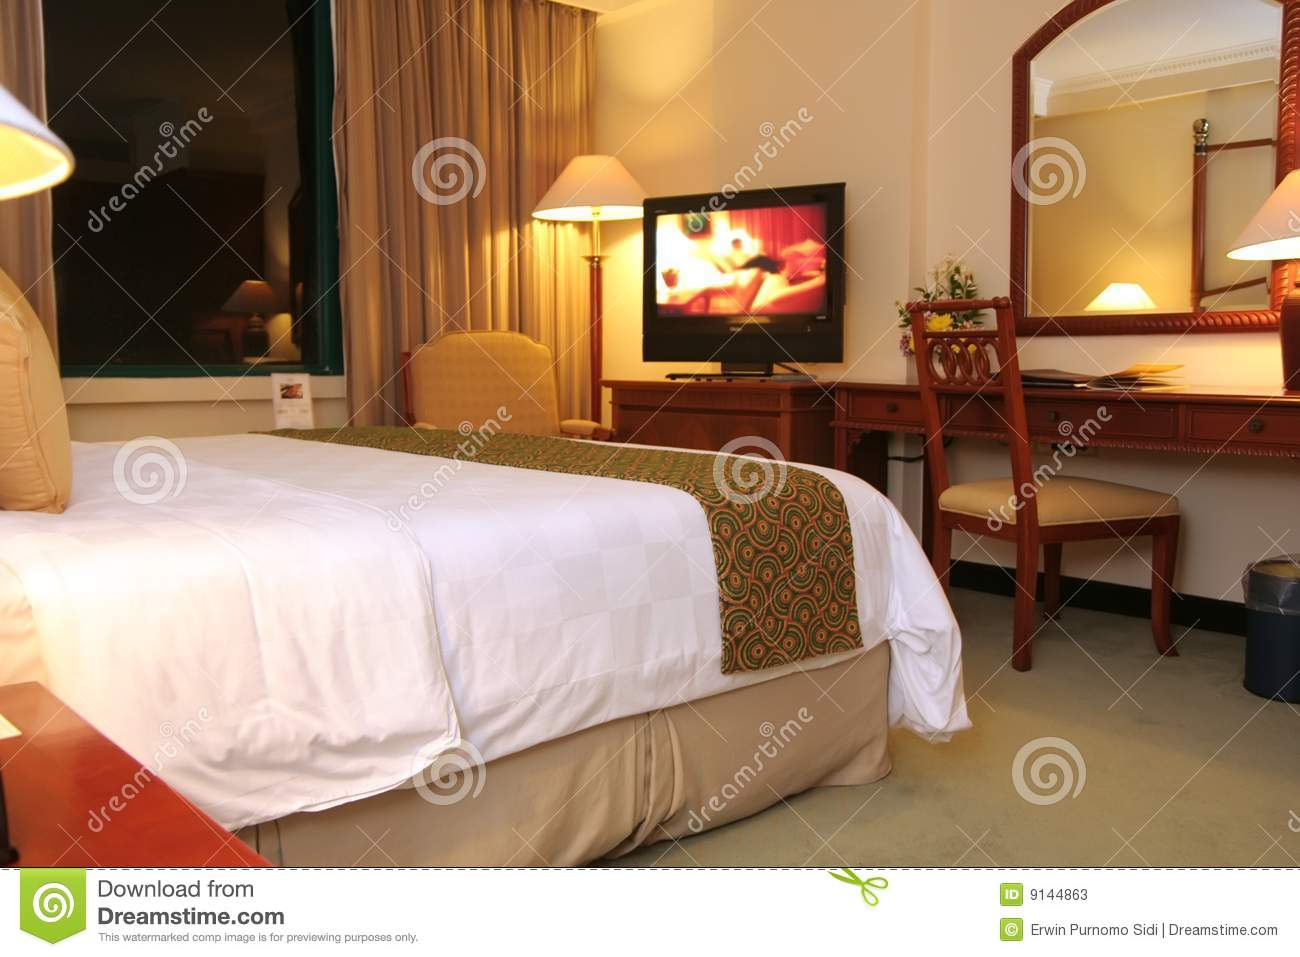 Hotel Room Room Setup Stock Photos Image 9144863